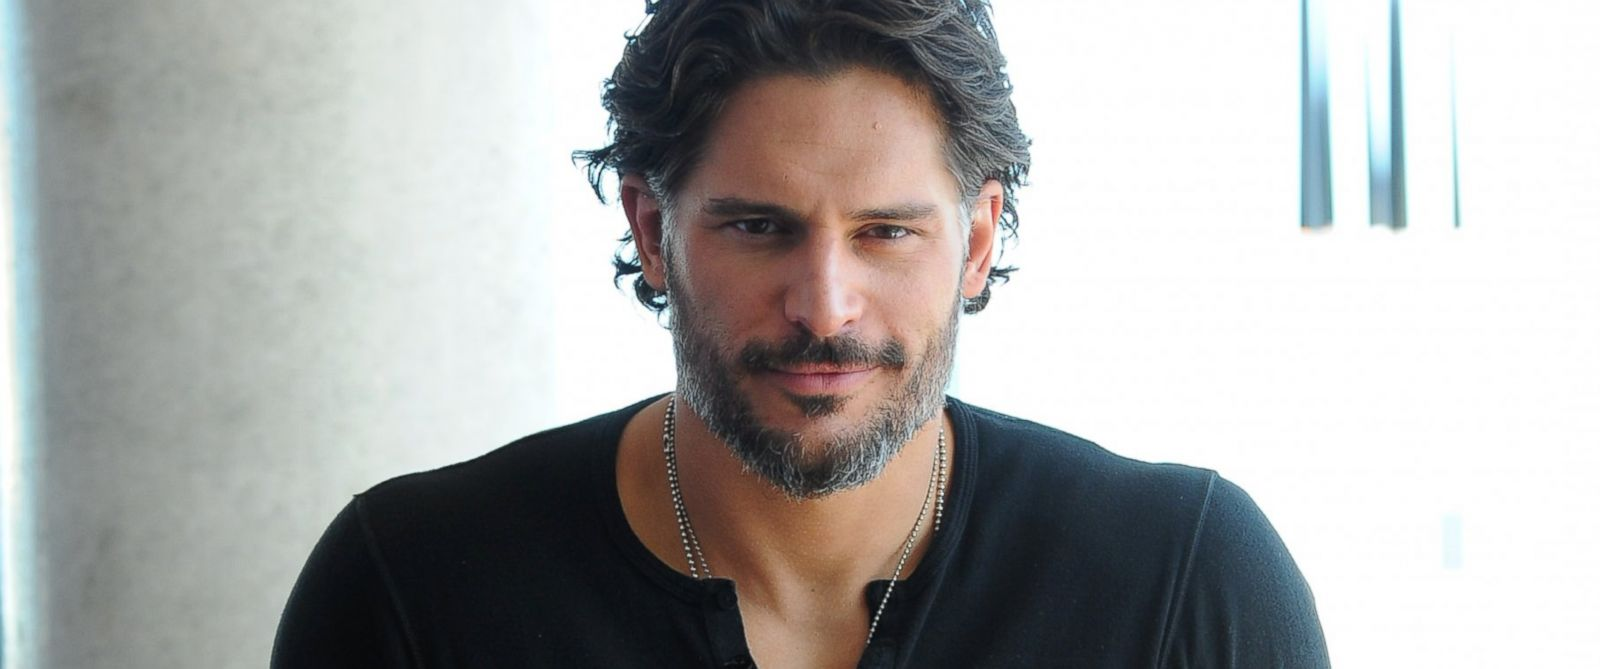 """PHOTO: Actor Joe Manganiello poses for a portrait at the press junket for his new film """"Magic Mike"""" at the Thompson Hotel in this June 14, 2012, file photo in Toronto, Canada."""